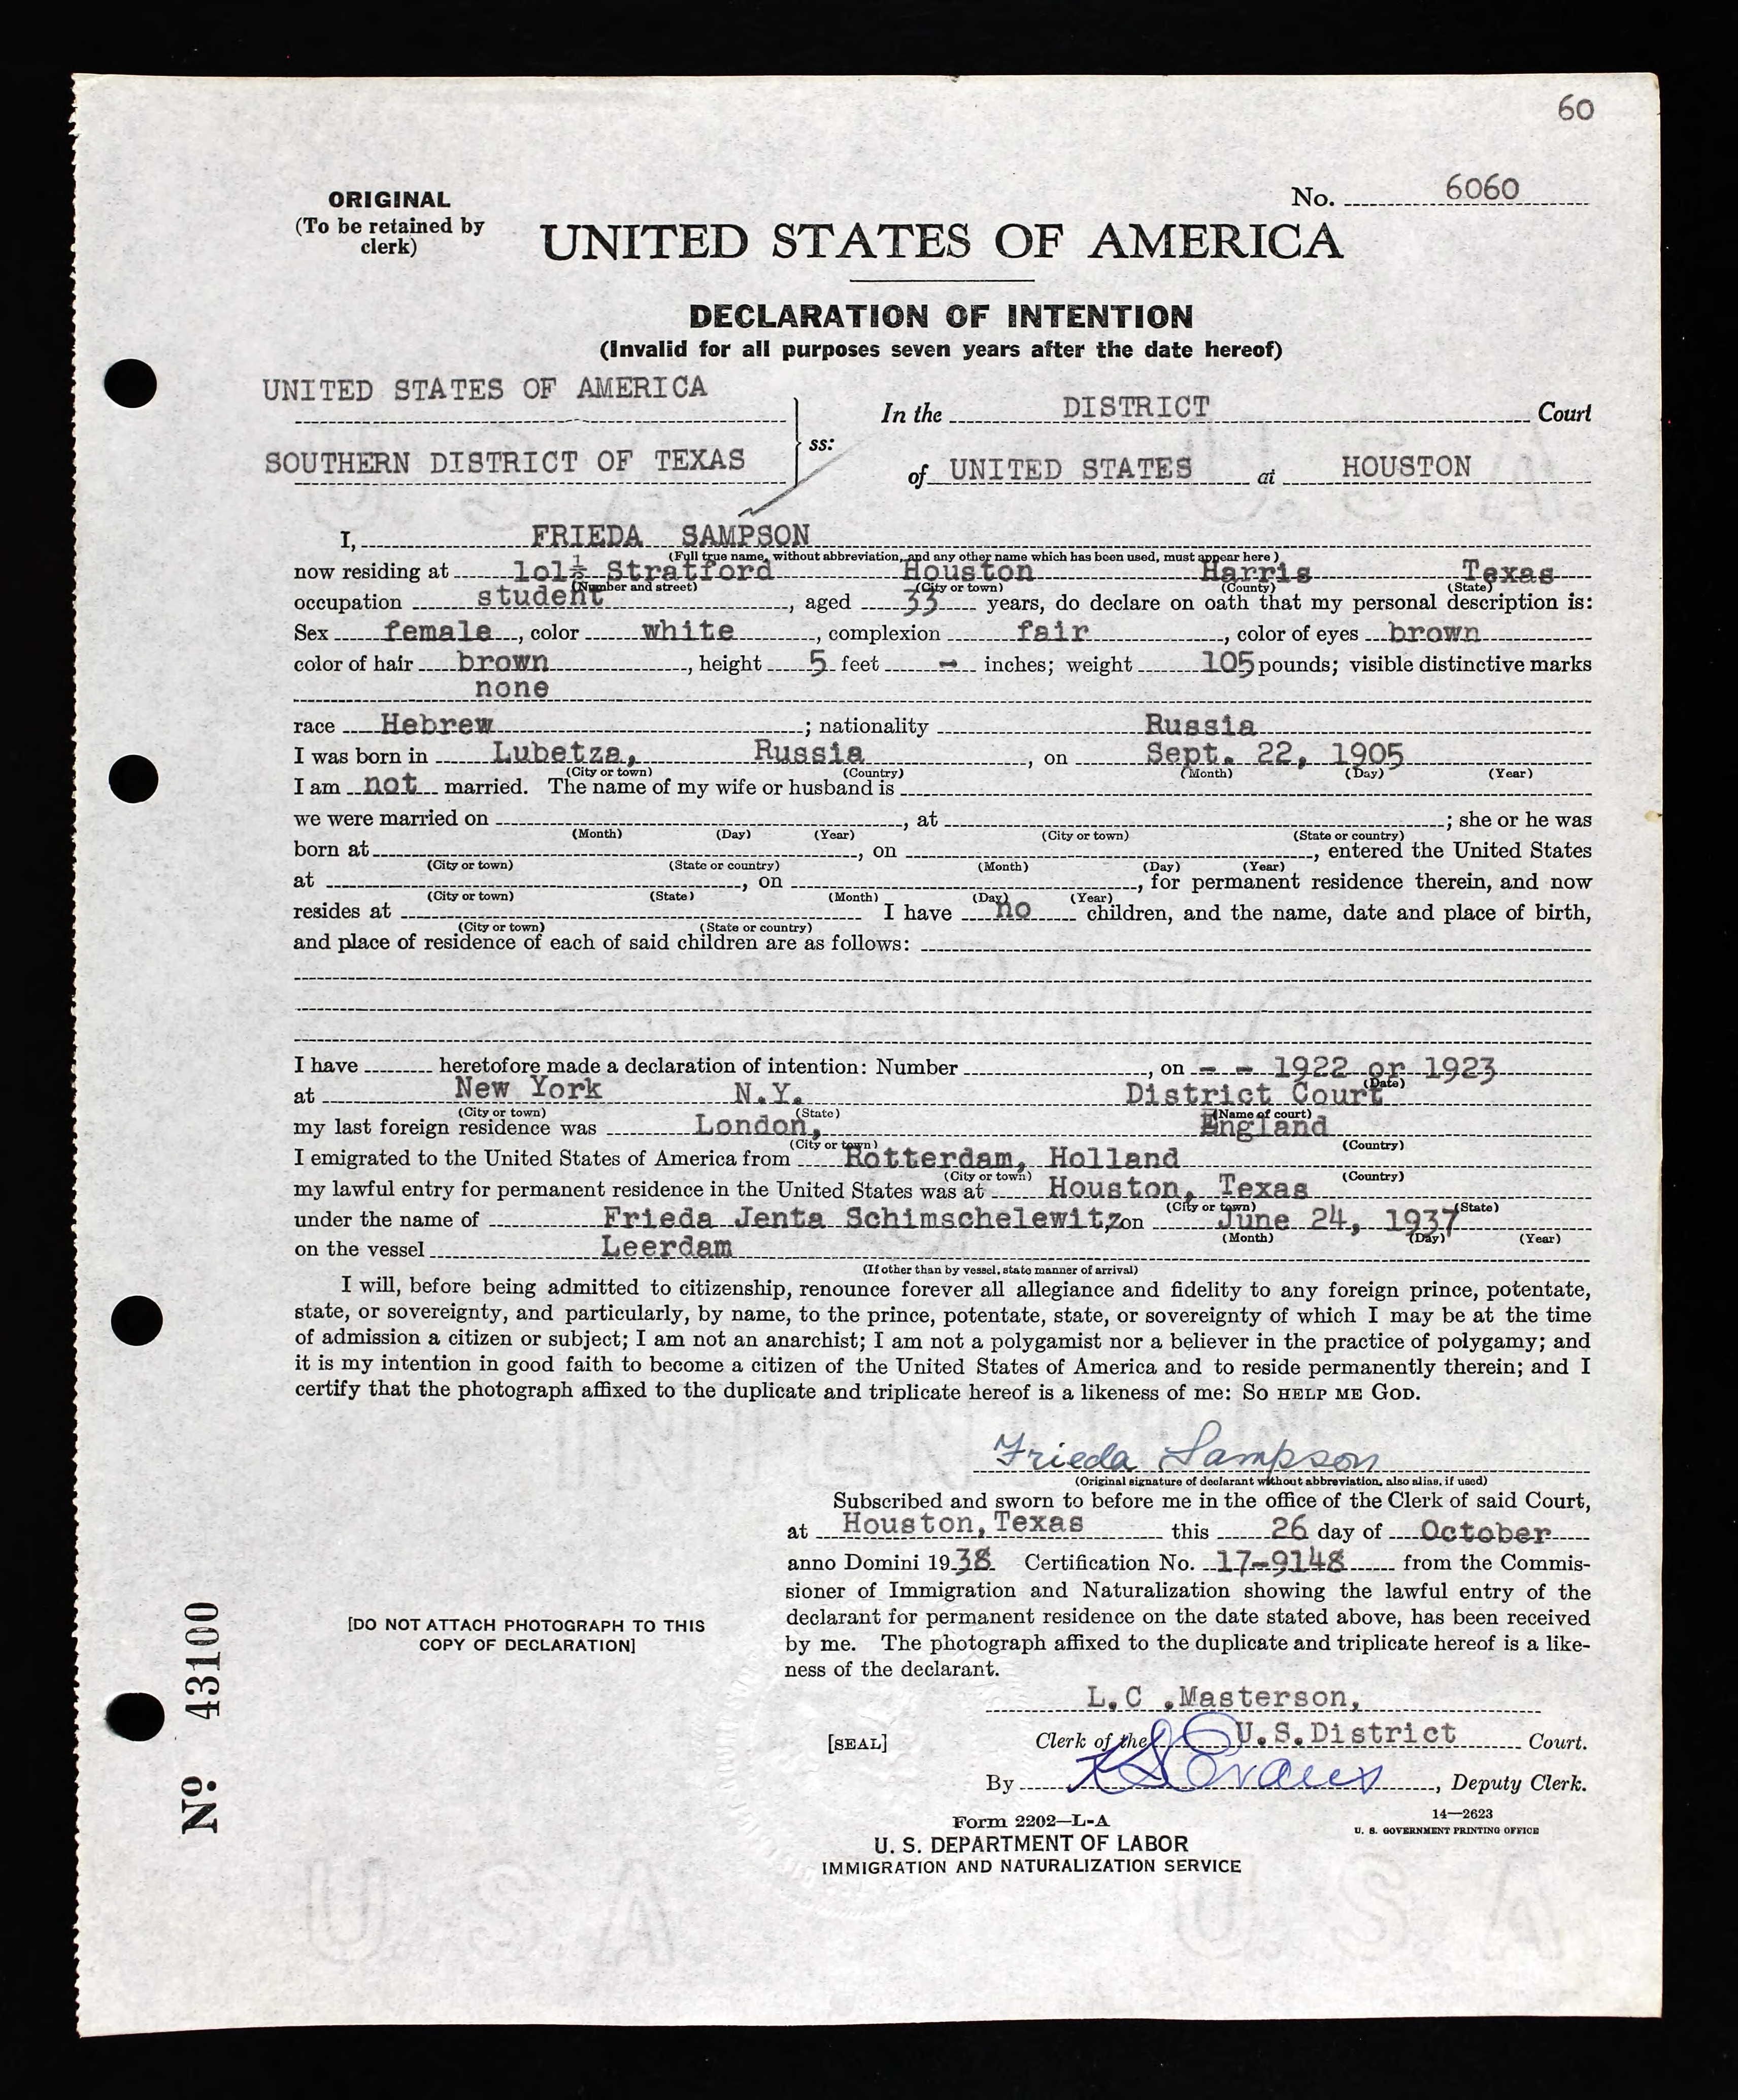 ... 33 Birth Date: 22 Sep 1905 Birth Place: Lubetza, Russia Record Date: 26  Oct 1938 Court District: Southern District of Texas Court Place: Houston,  Texas, ...